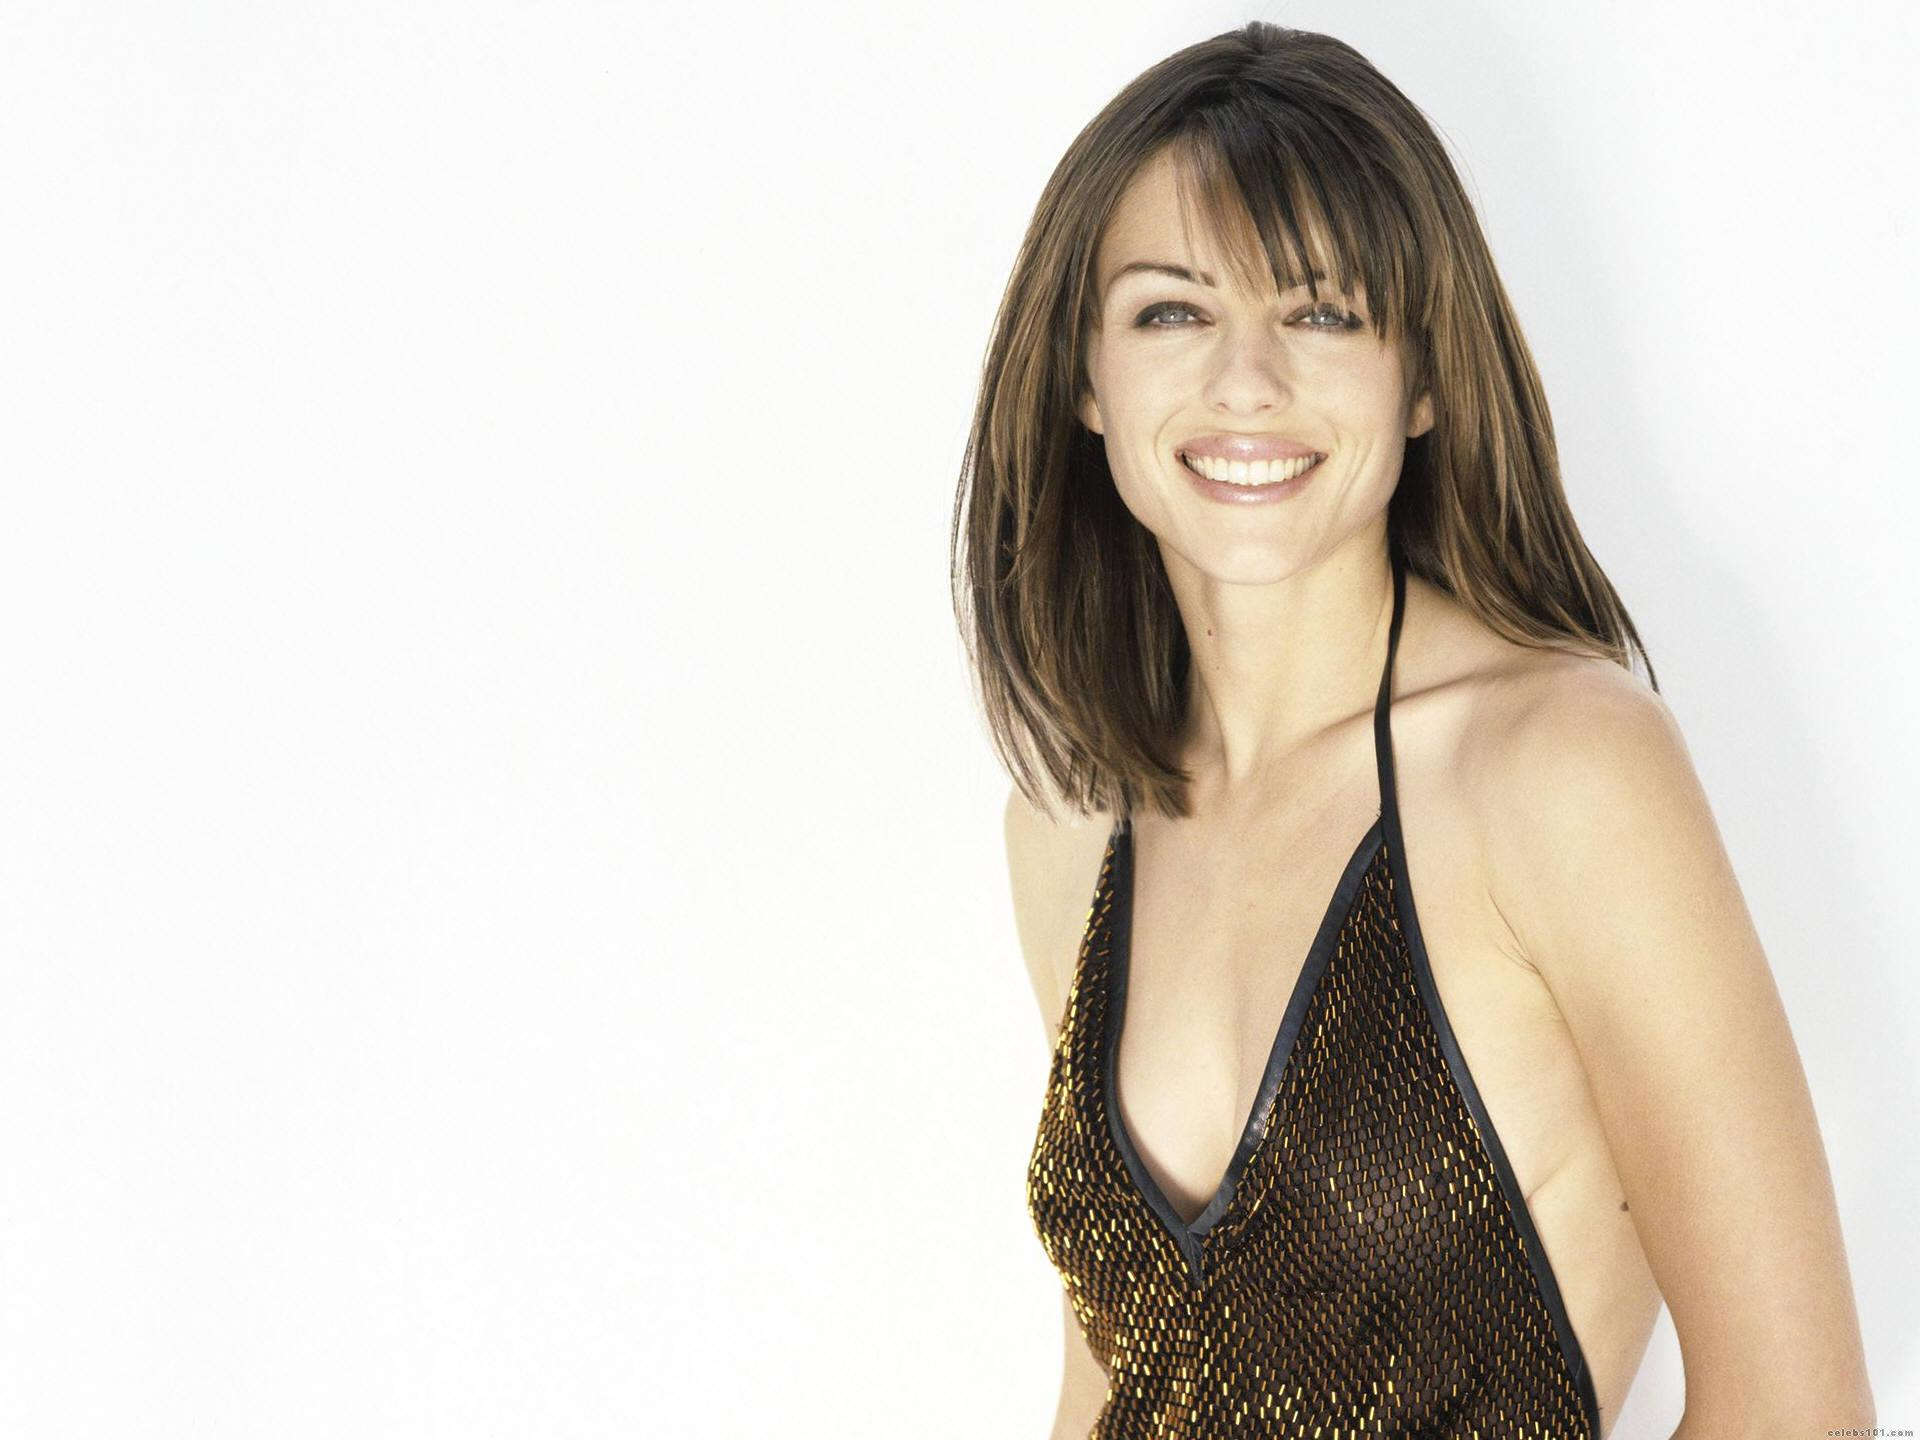 Elizabeth Hurley High quality wallpaper size 1920x1440 of 1920x1440